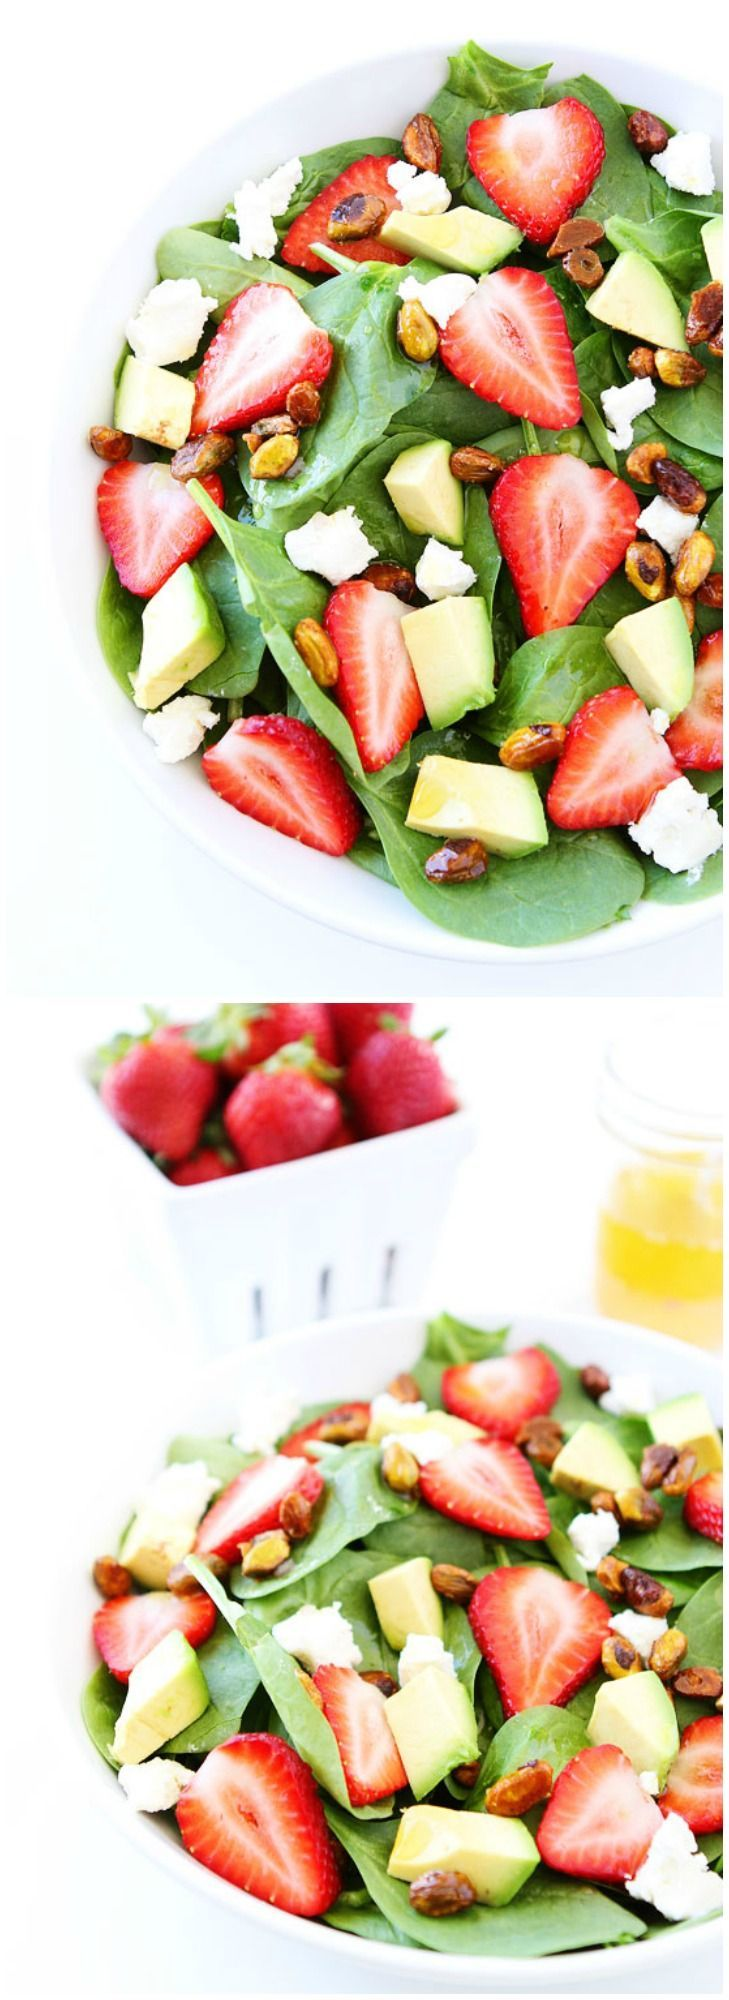 Strawberry Spinach Salad with Avocado, Goat Cheese, and Candied Pistachios on http://twopeasandtheirpod.com The perfect salad for spring and summer!